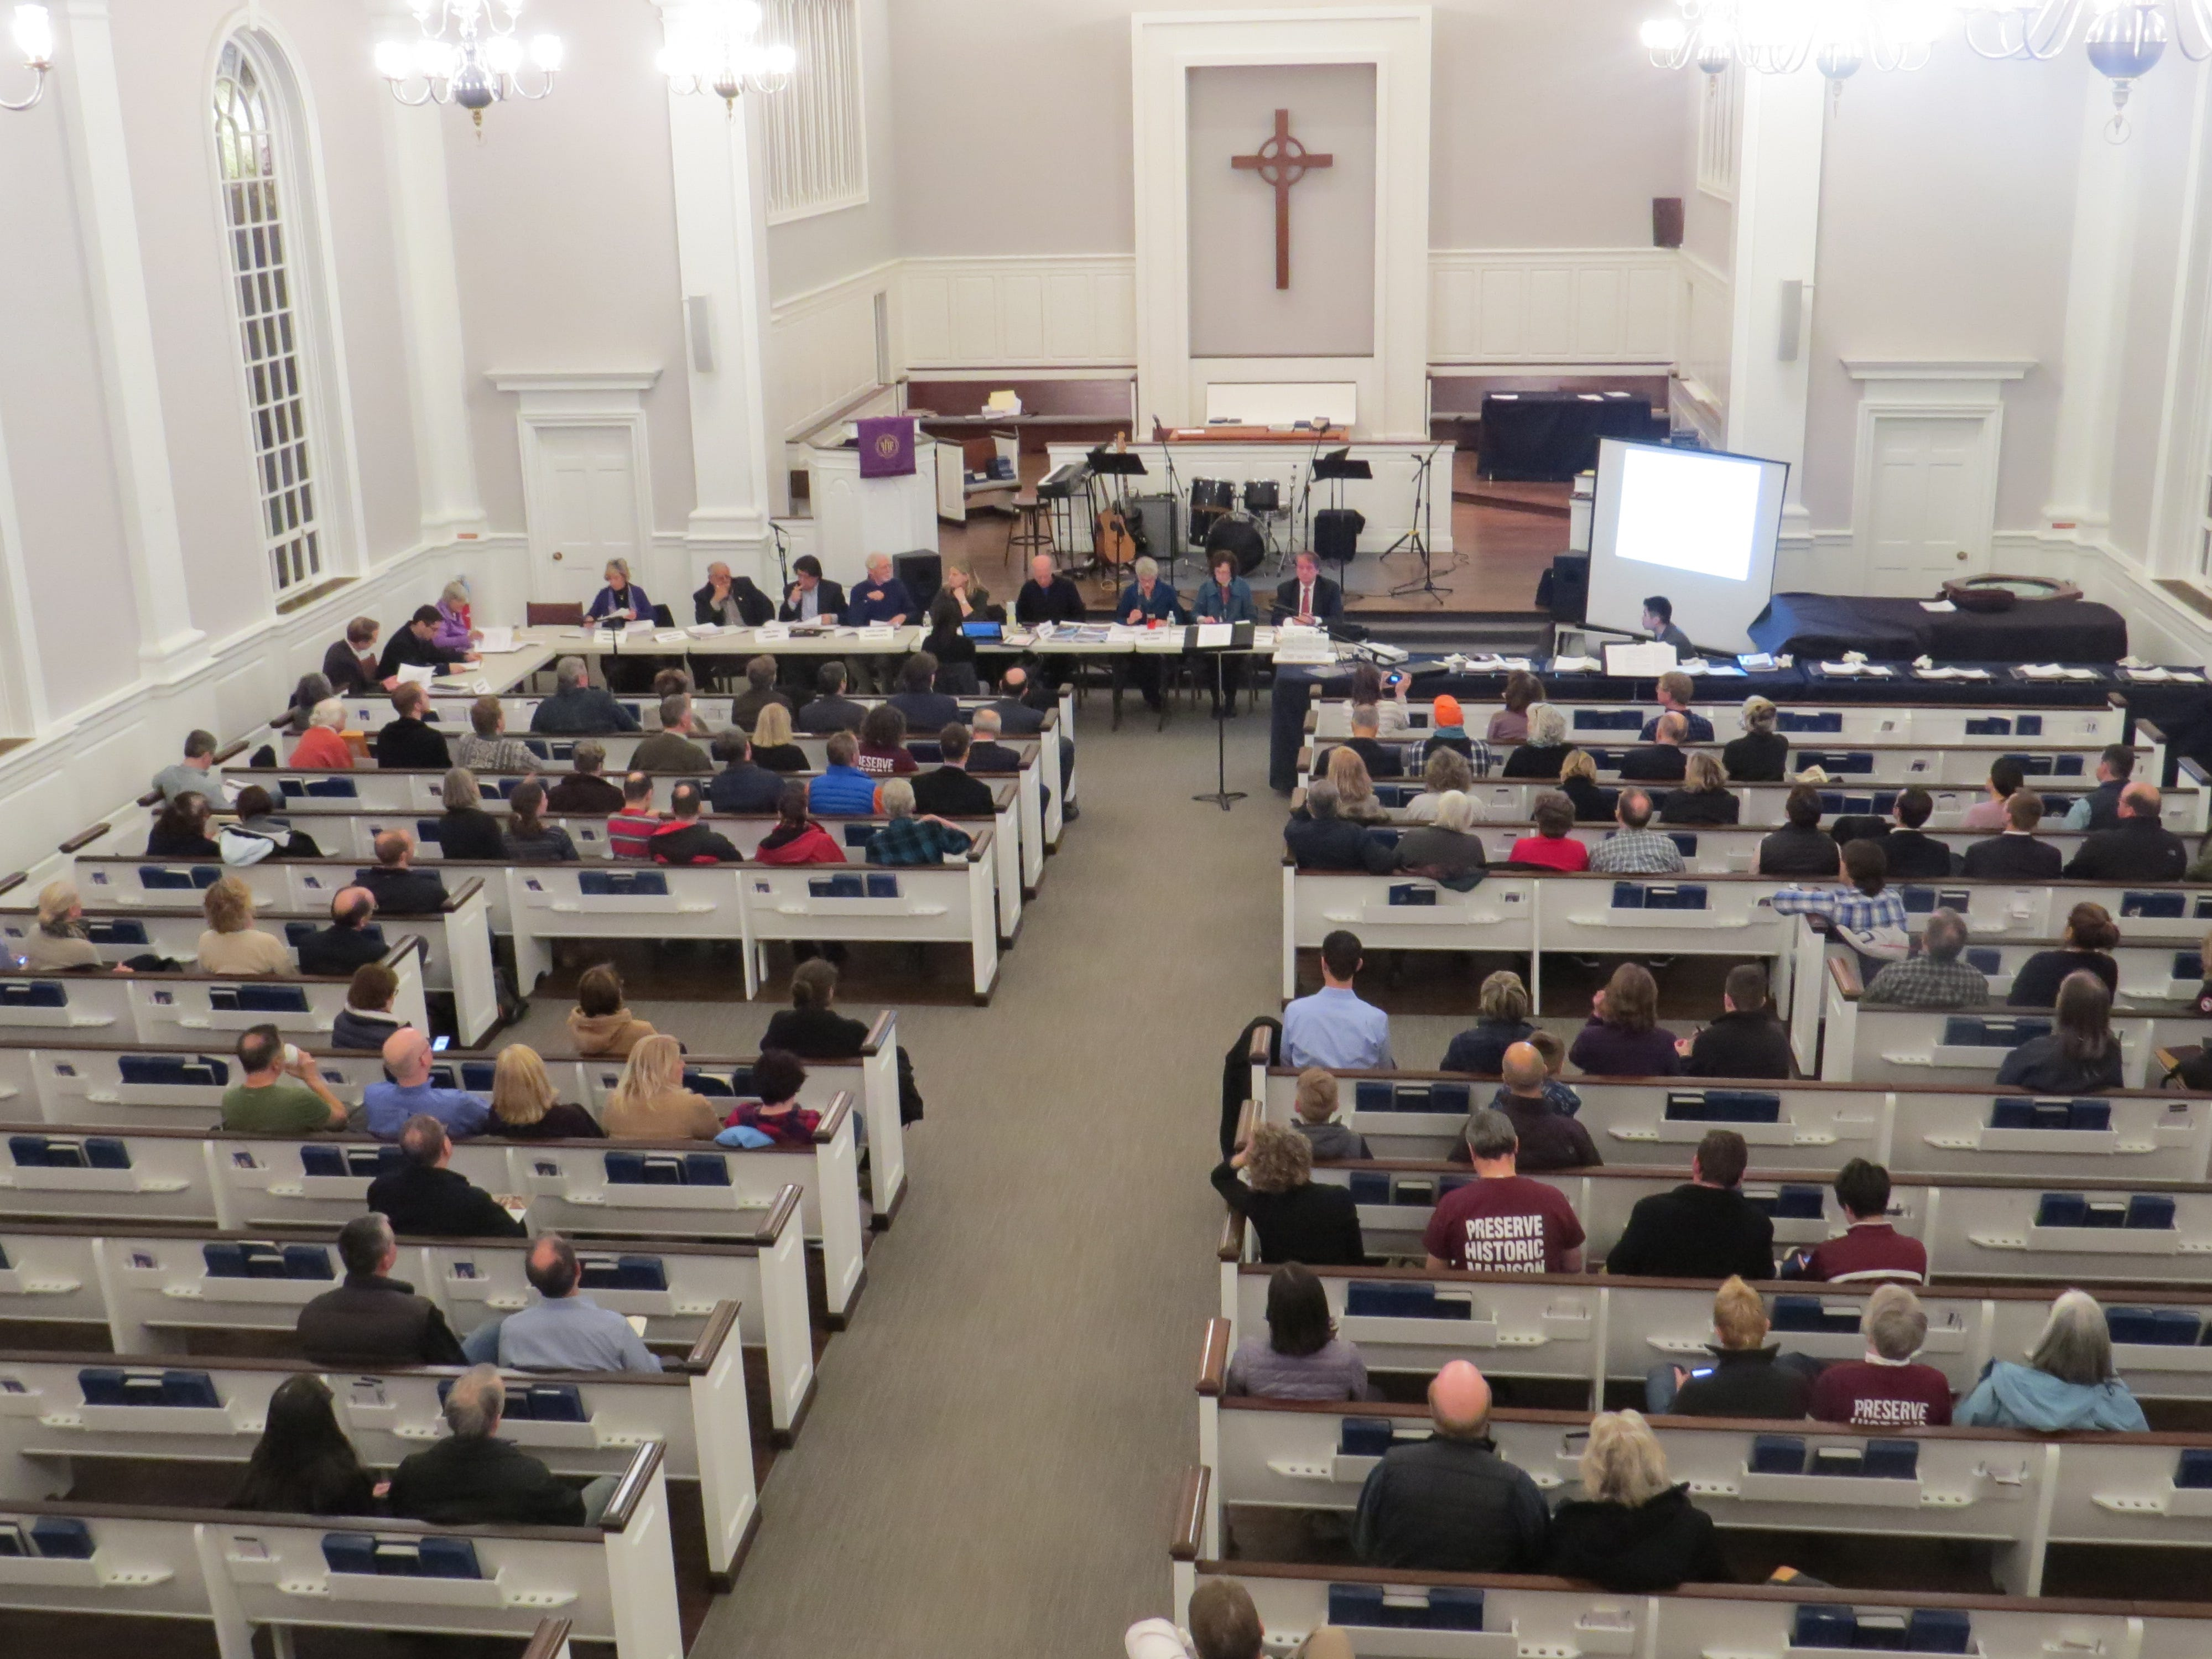 Residents pack the Presbyterian Church of Madison for a meeting of the Madison Historic Preservation Commission meeting March 12, 2019. More than 100 turned out for discussion about the proposed demolition of the historic Madison Theatre, requiring the meeting to be moved across the street from the council chambers at the Hartley-Dodge Memorial.